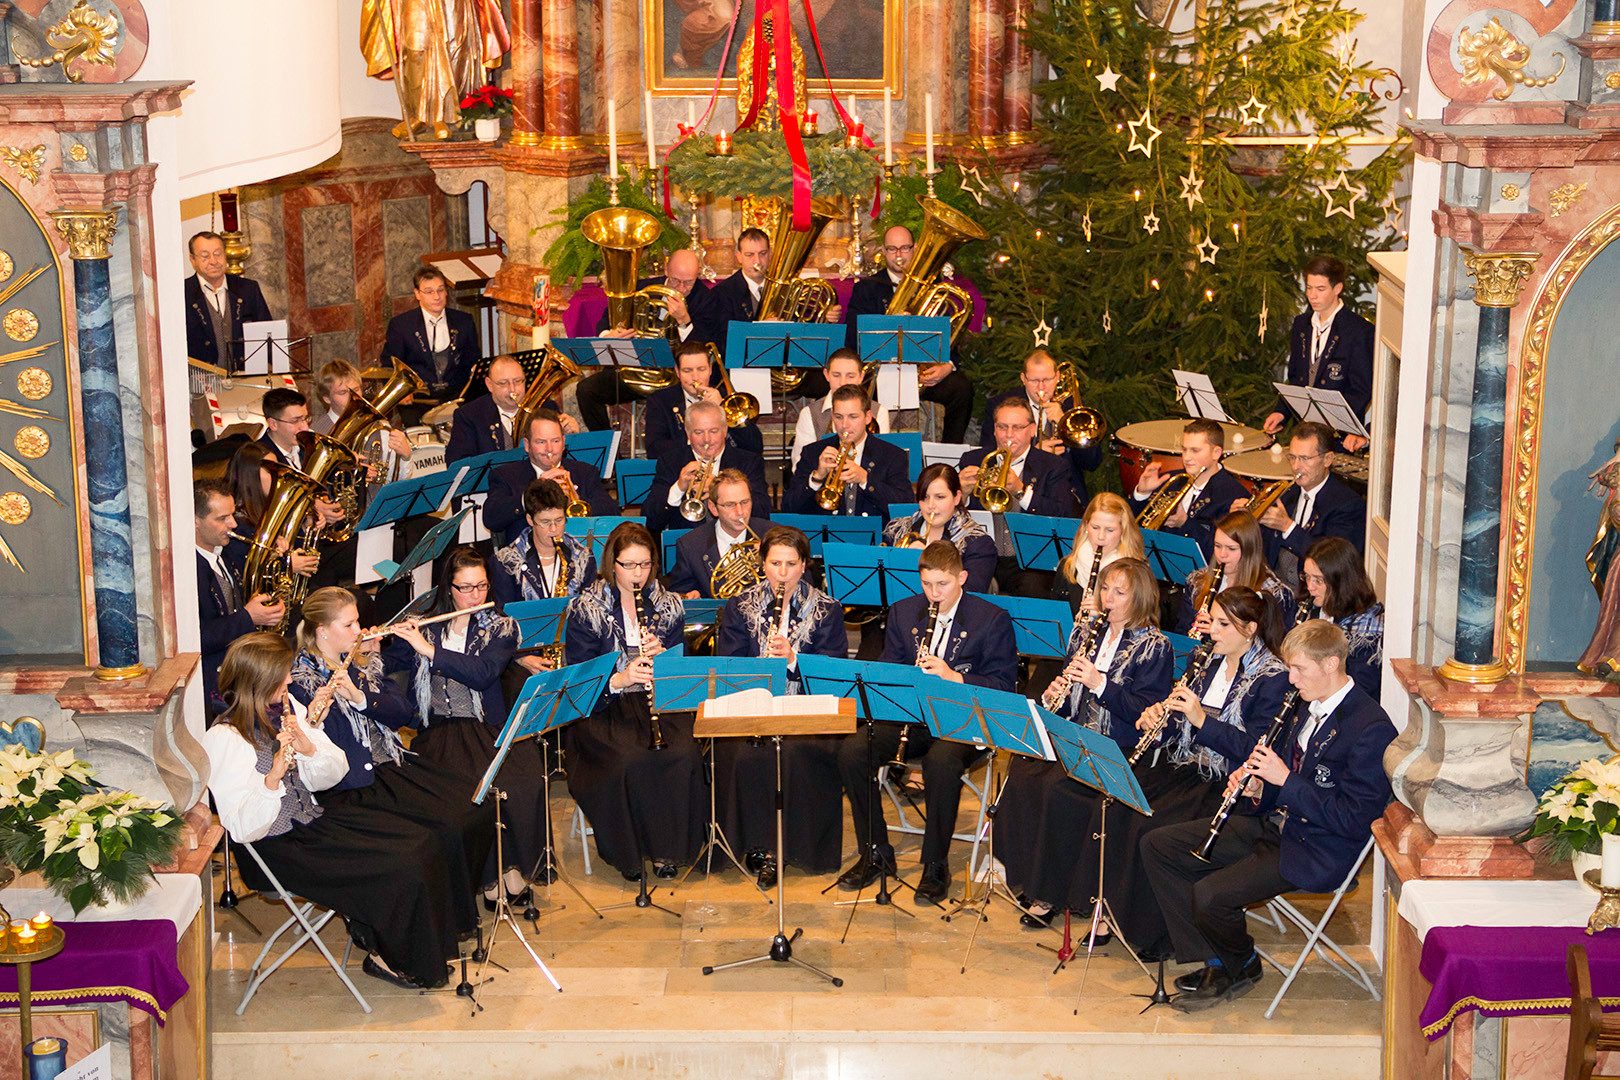 Musikverein Dingelsdorf - am Adventskonzert in der St. Nikolauskirche in Dingelsdorf